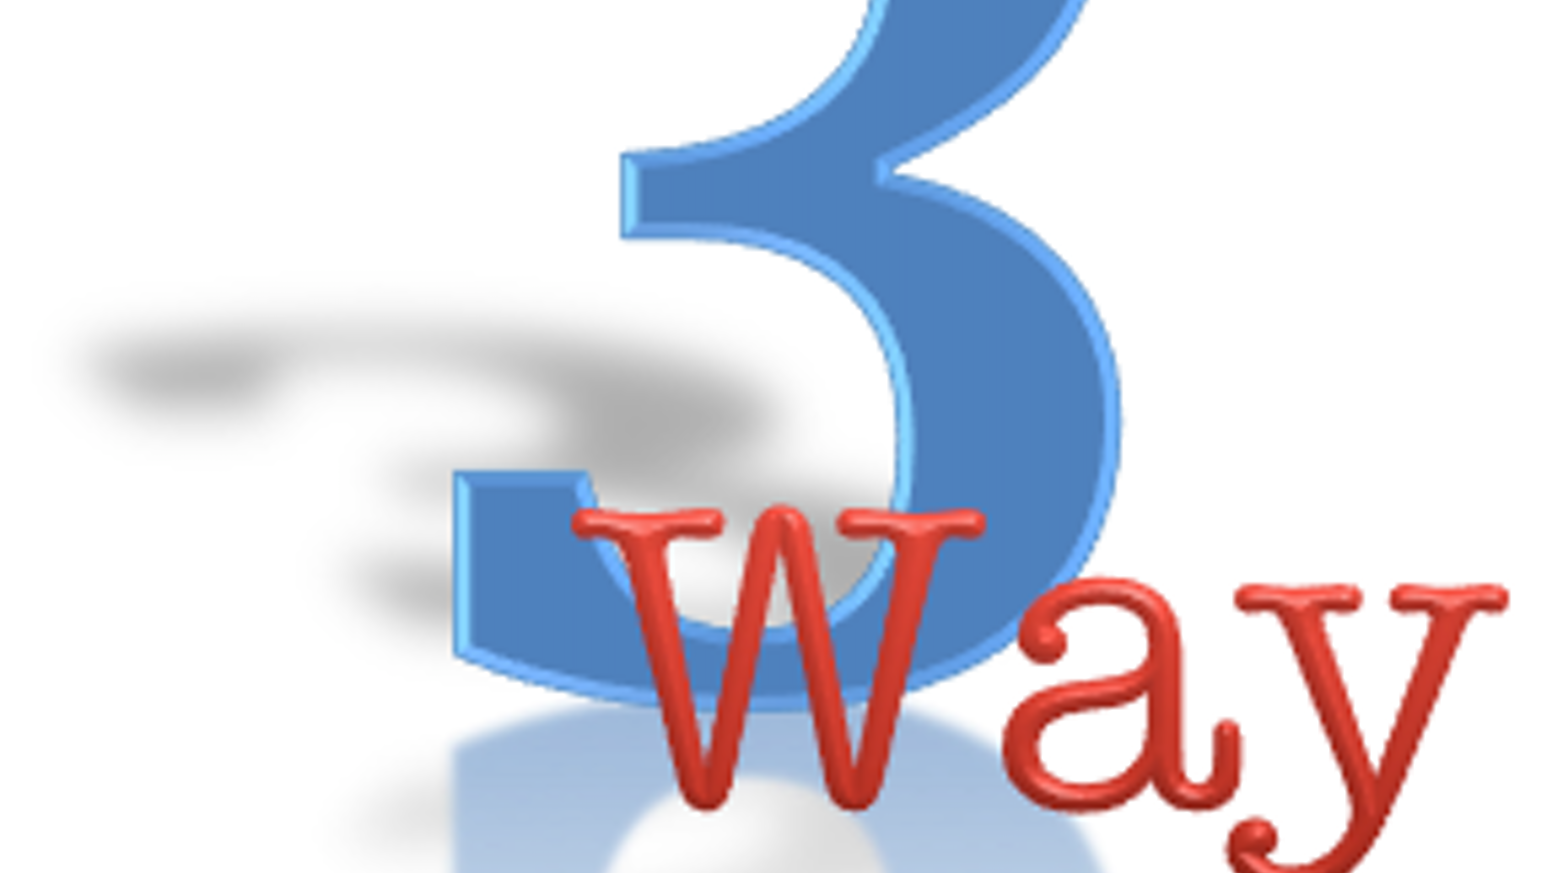 three way relationship dating site